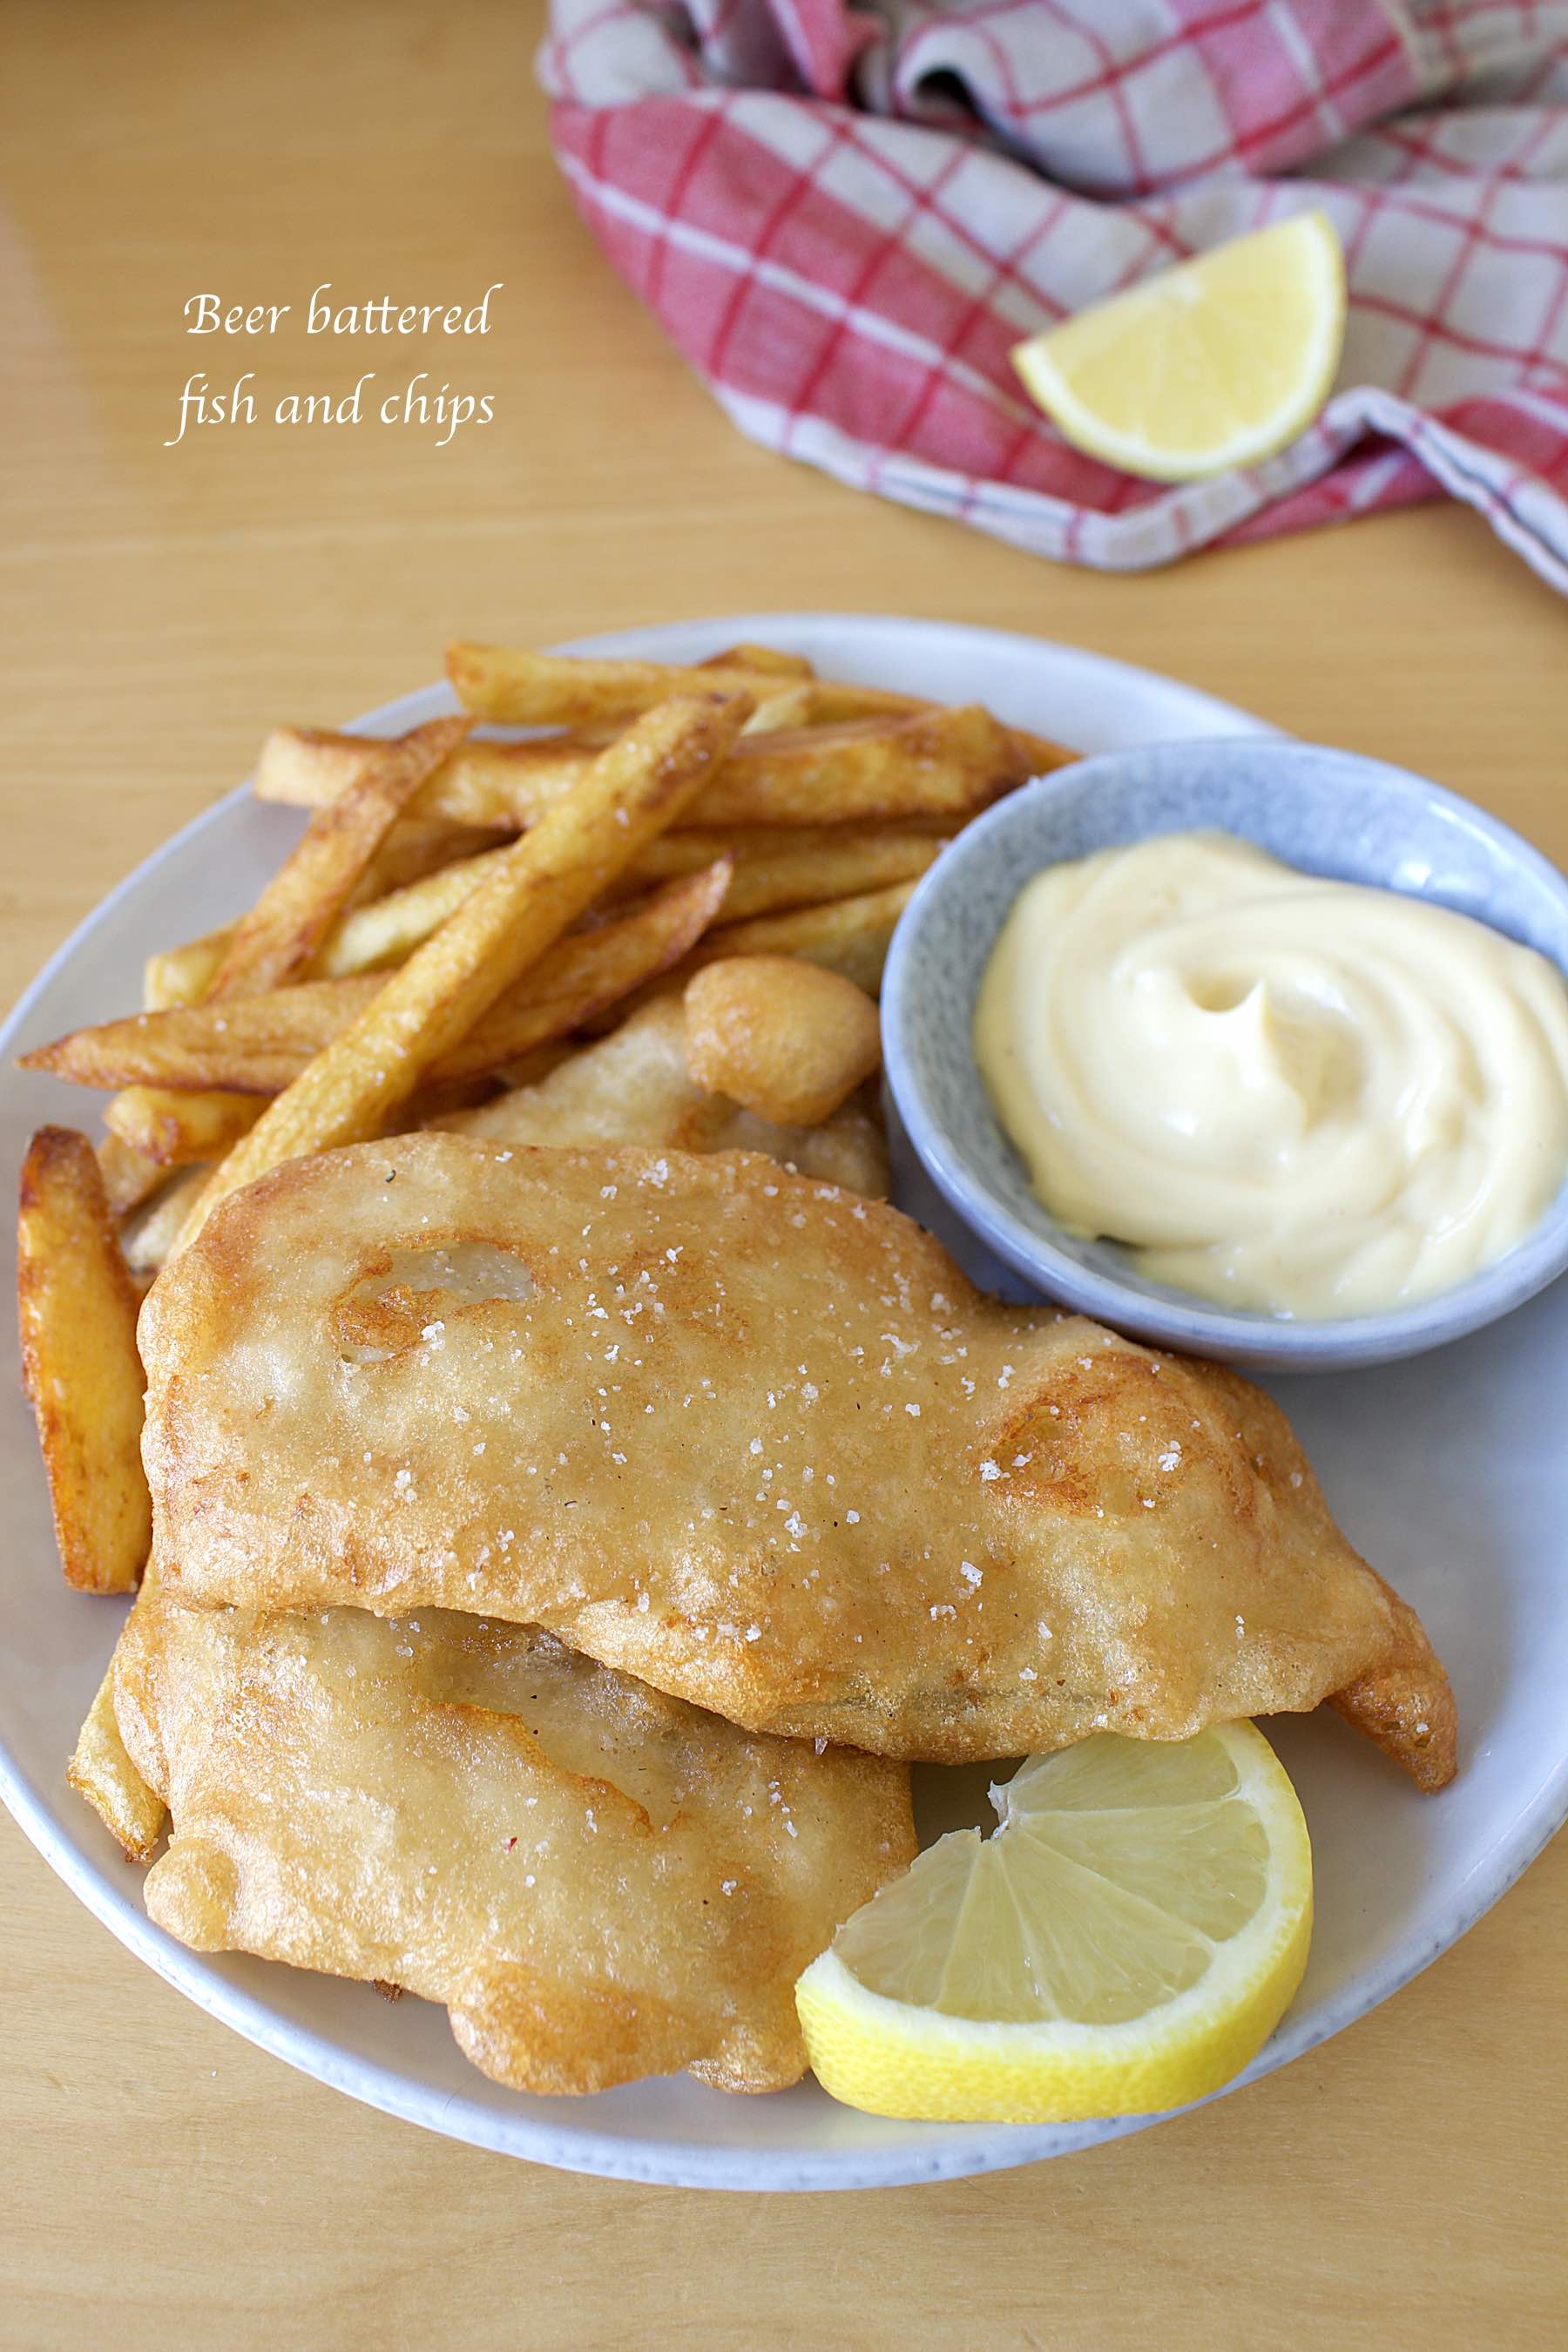 Fish and chips, beer battered fish